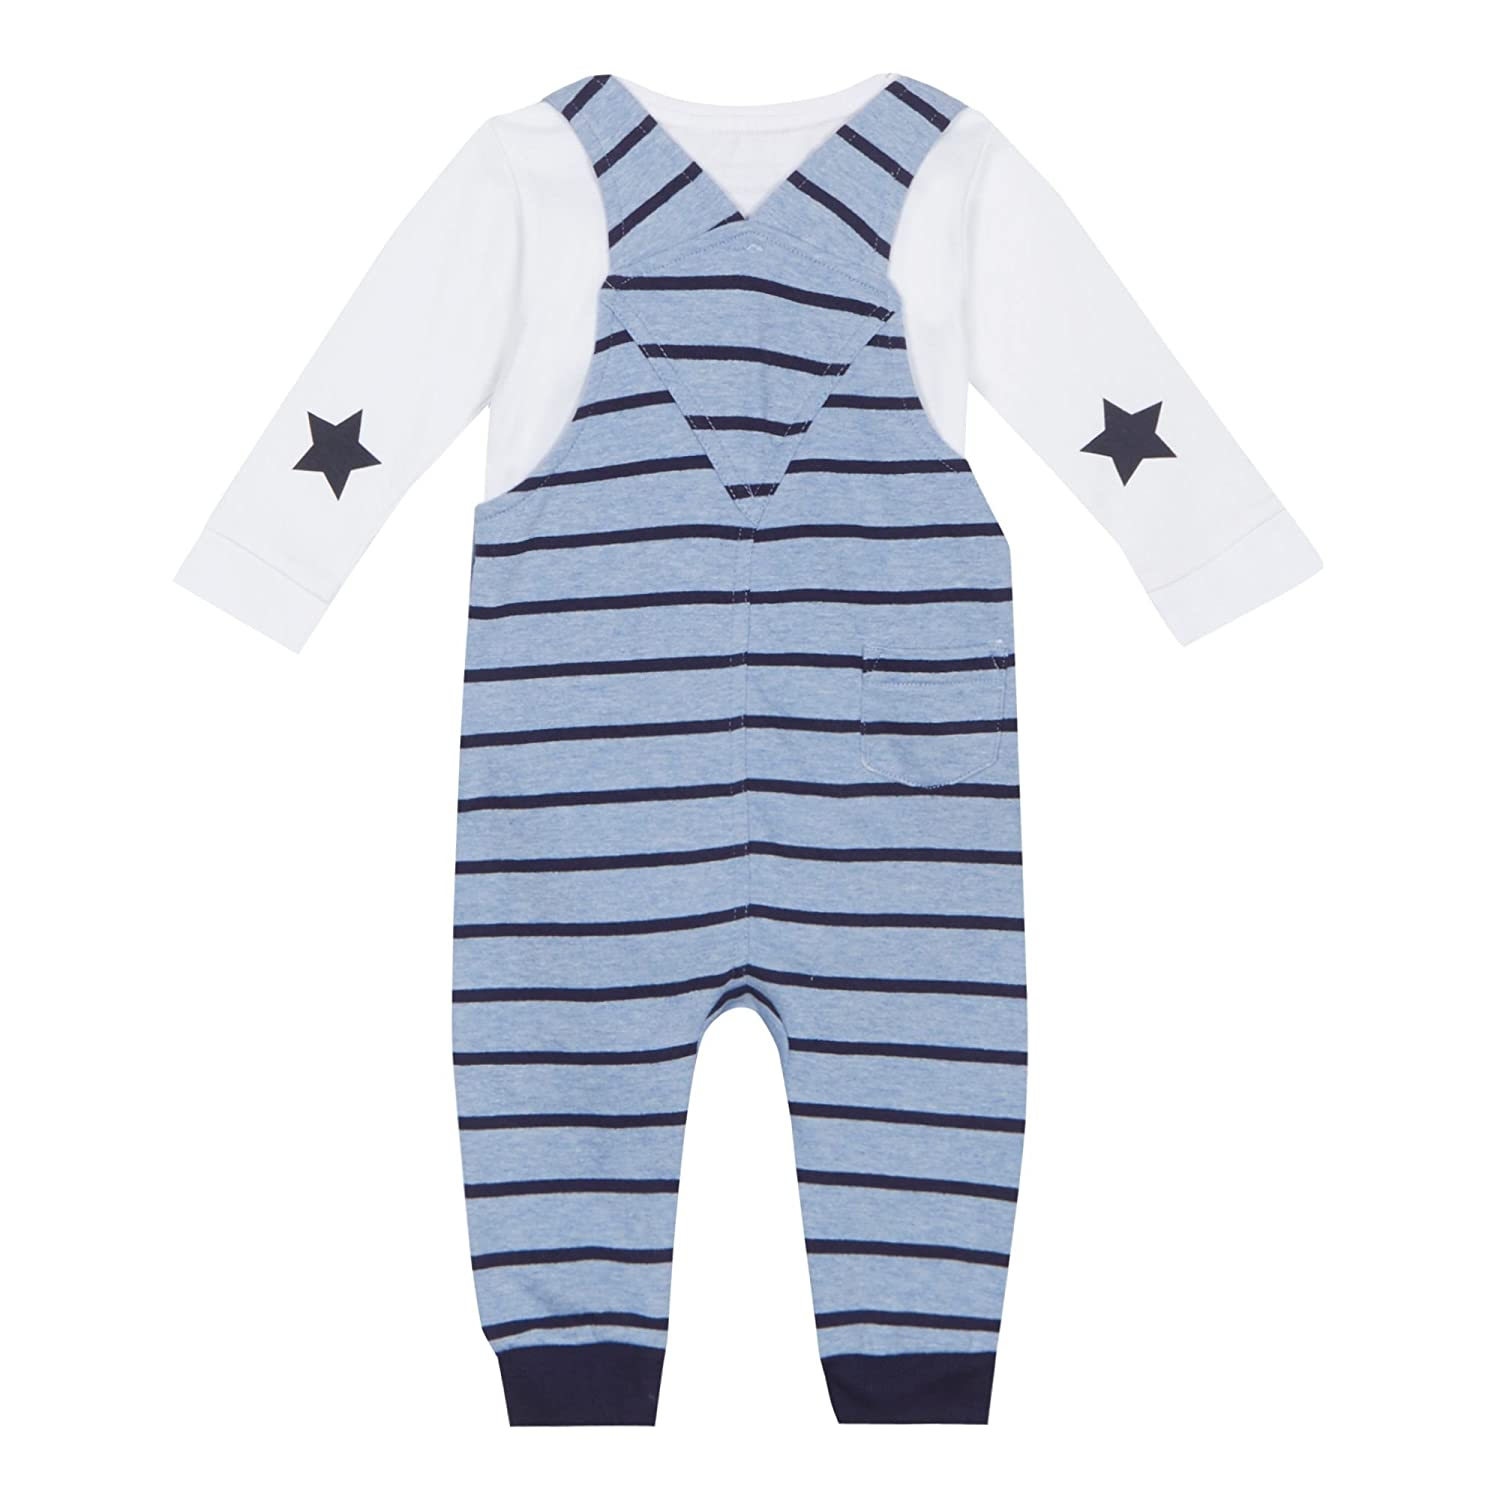 6cd4ecc38808 Baby Boys Blue Dinosaur Town Applique Dungarees and White Long Sleeve  Bodysuit Set 18-24 Months bluezoo